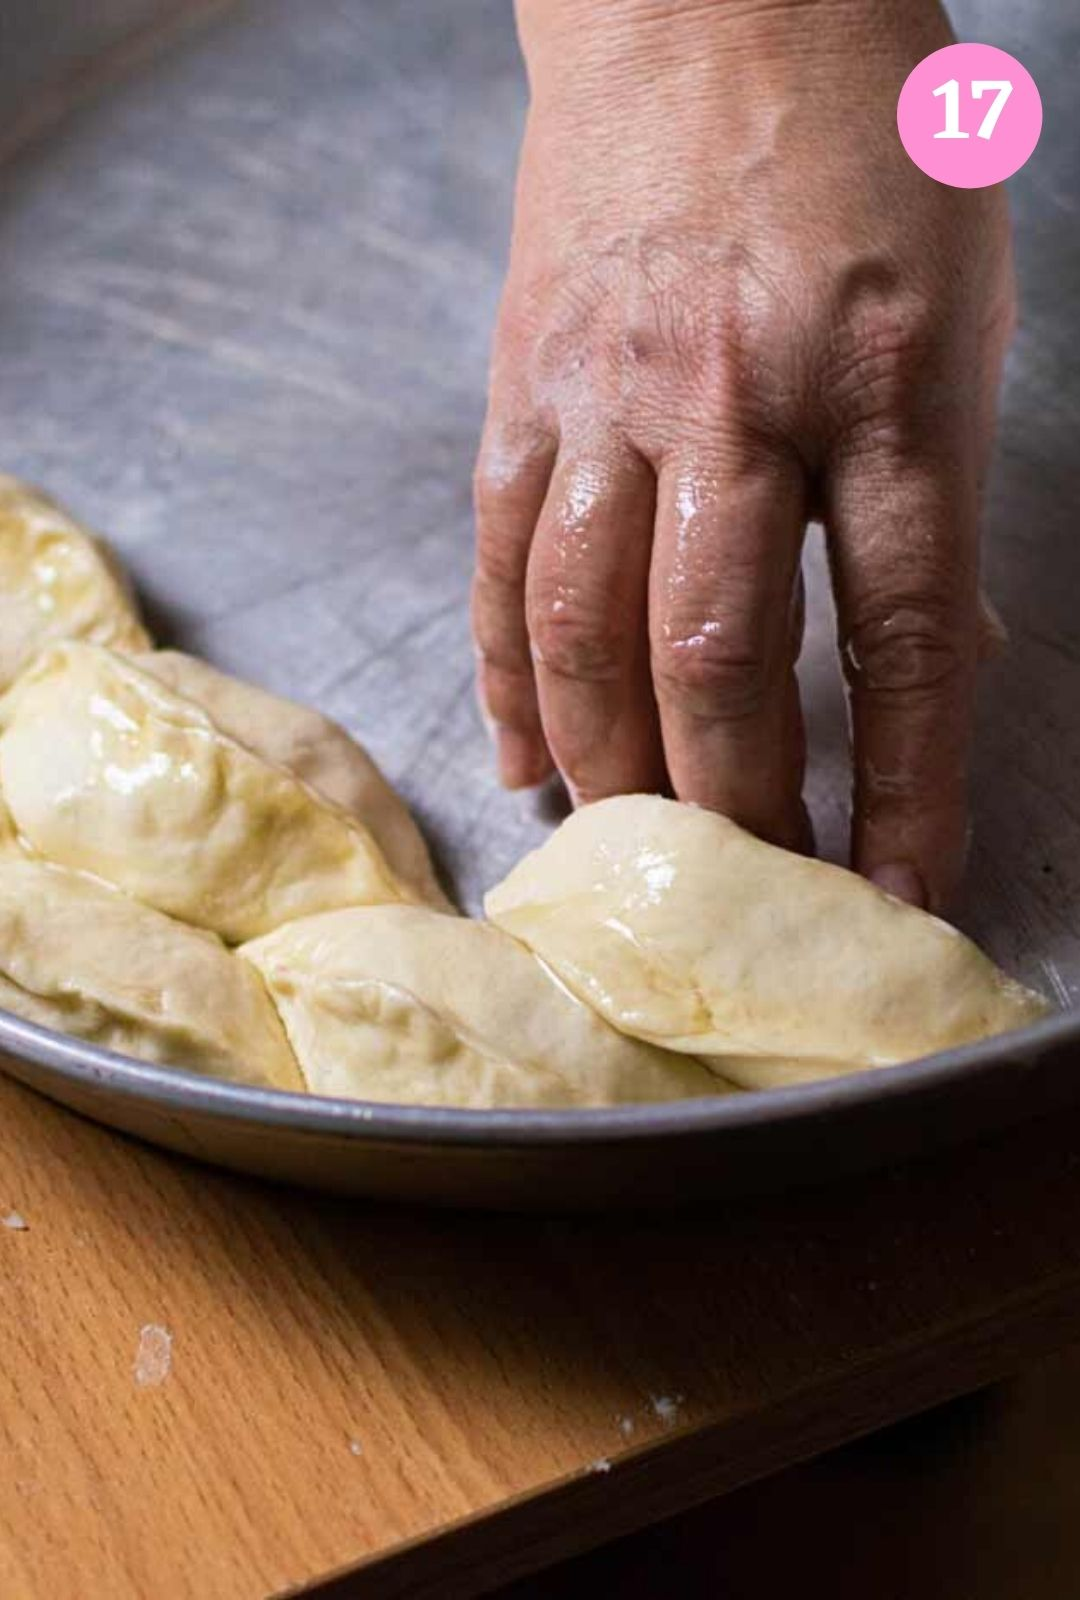 Putting hand pies inside tray